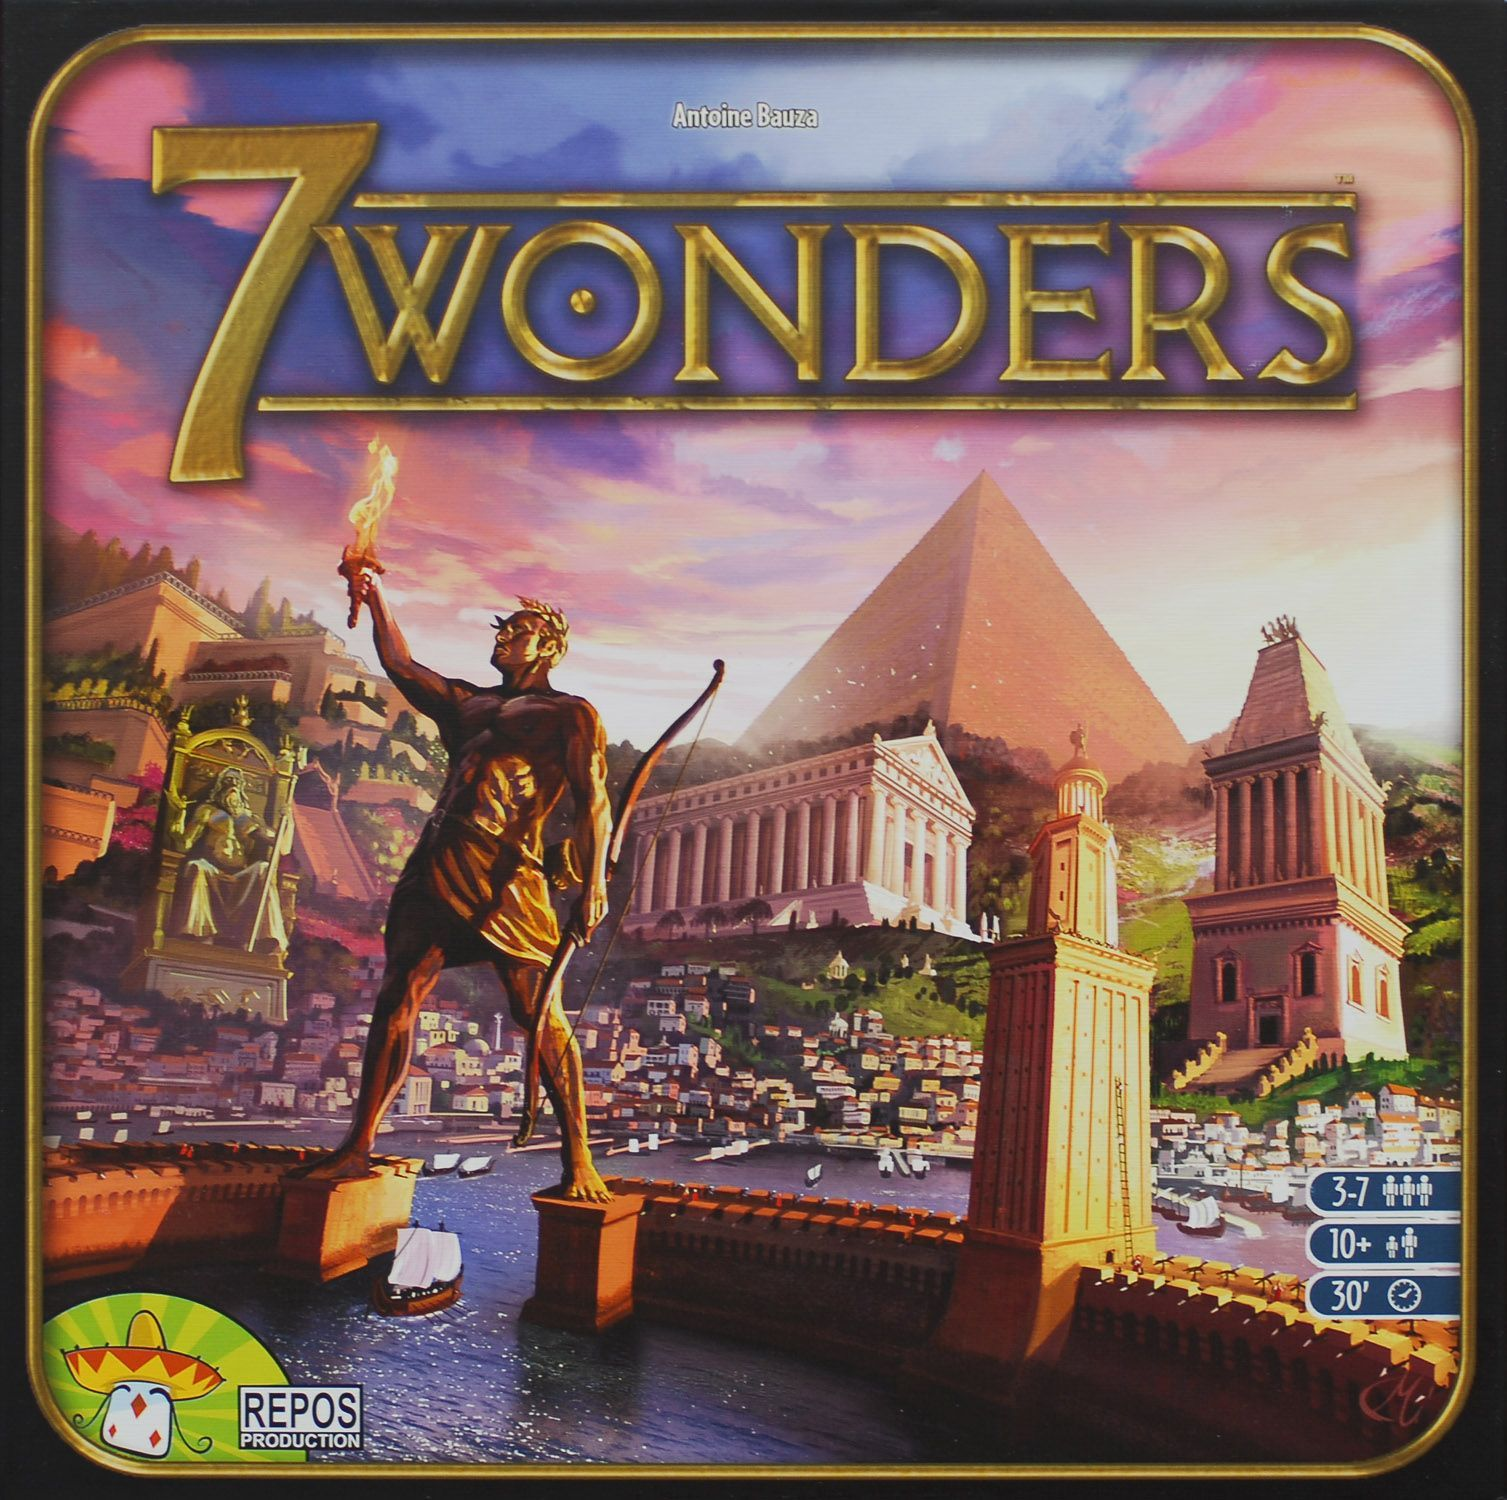 Main image for 7 Wonders board game